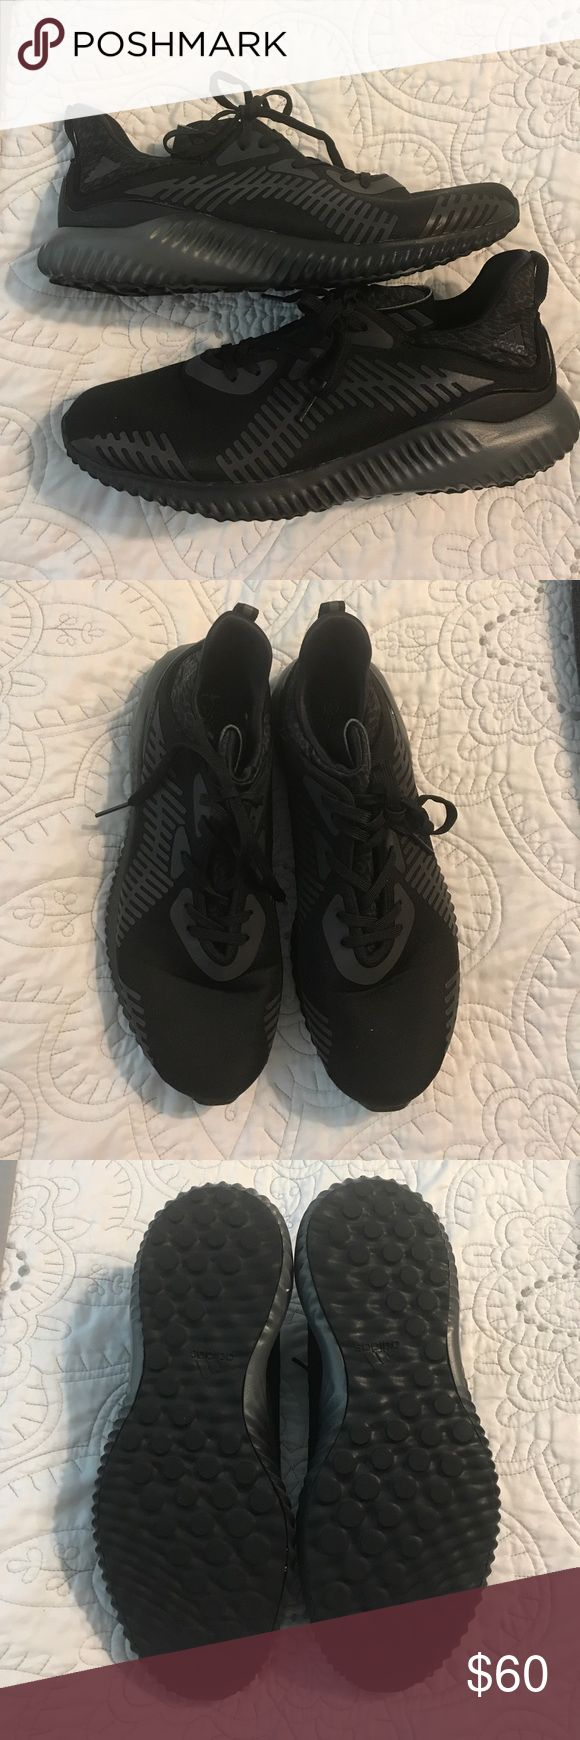 Adidas Alphabounce Running Shoes Women's Adidas Alphabounce running shoes. All black, but have reflective details that light up when lights are on them. Size 9.5. Overall great condition, I did wear them a few times for softball, so there is some minor wear on the inside of the right shoe by the toe. Attached picture of wear adidas Shoes Sneakers